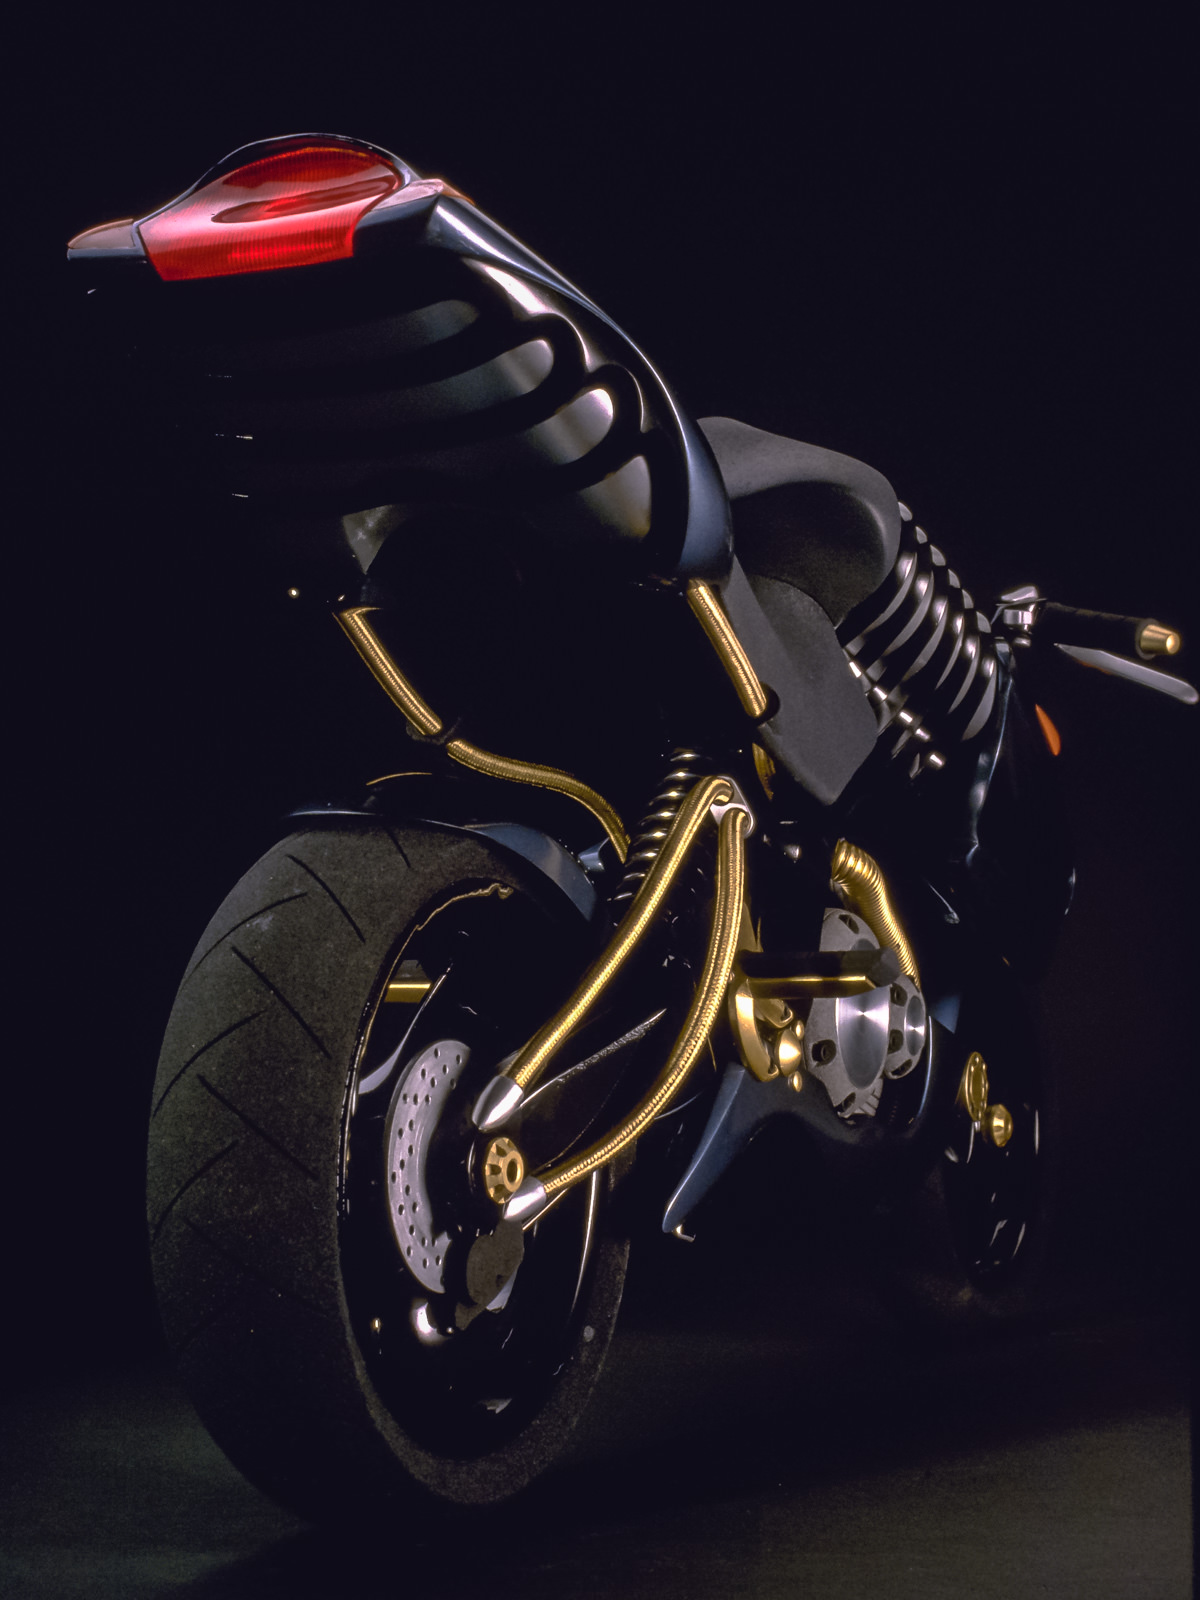 Frog perspective rear view of the final finished scale model of the metallic blue and gold accented H2 motorcycle